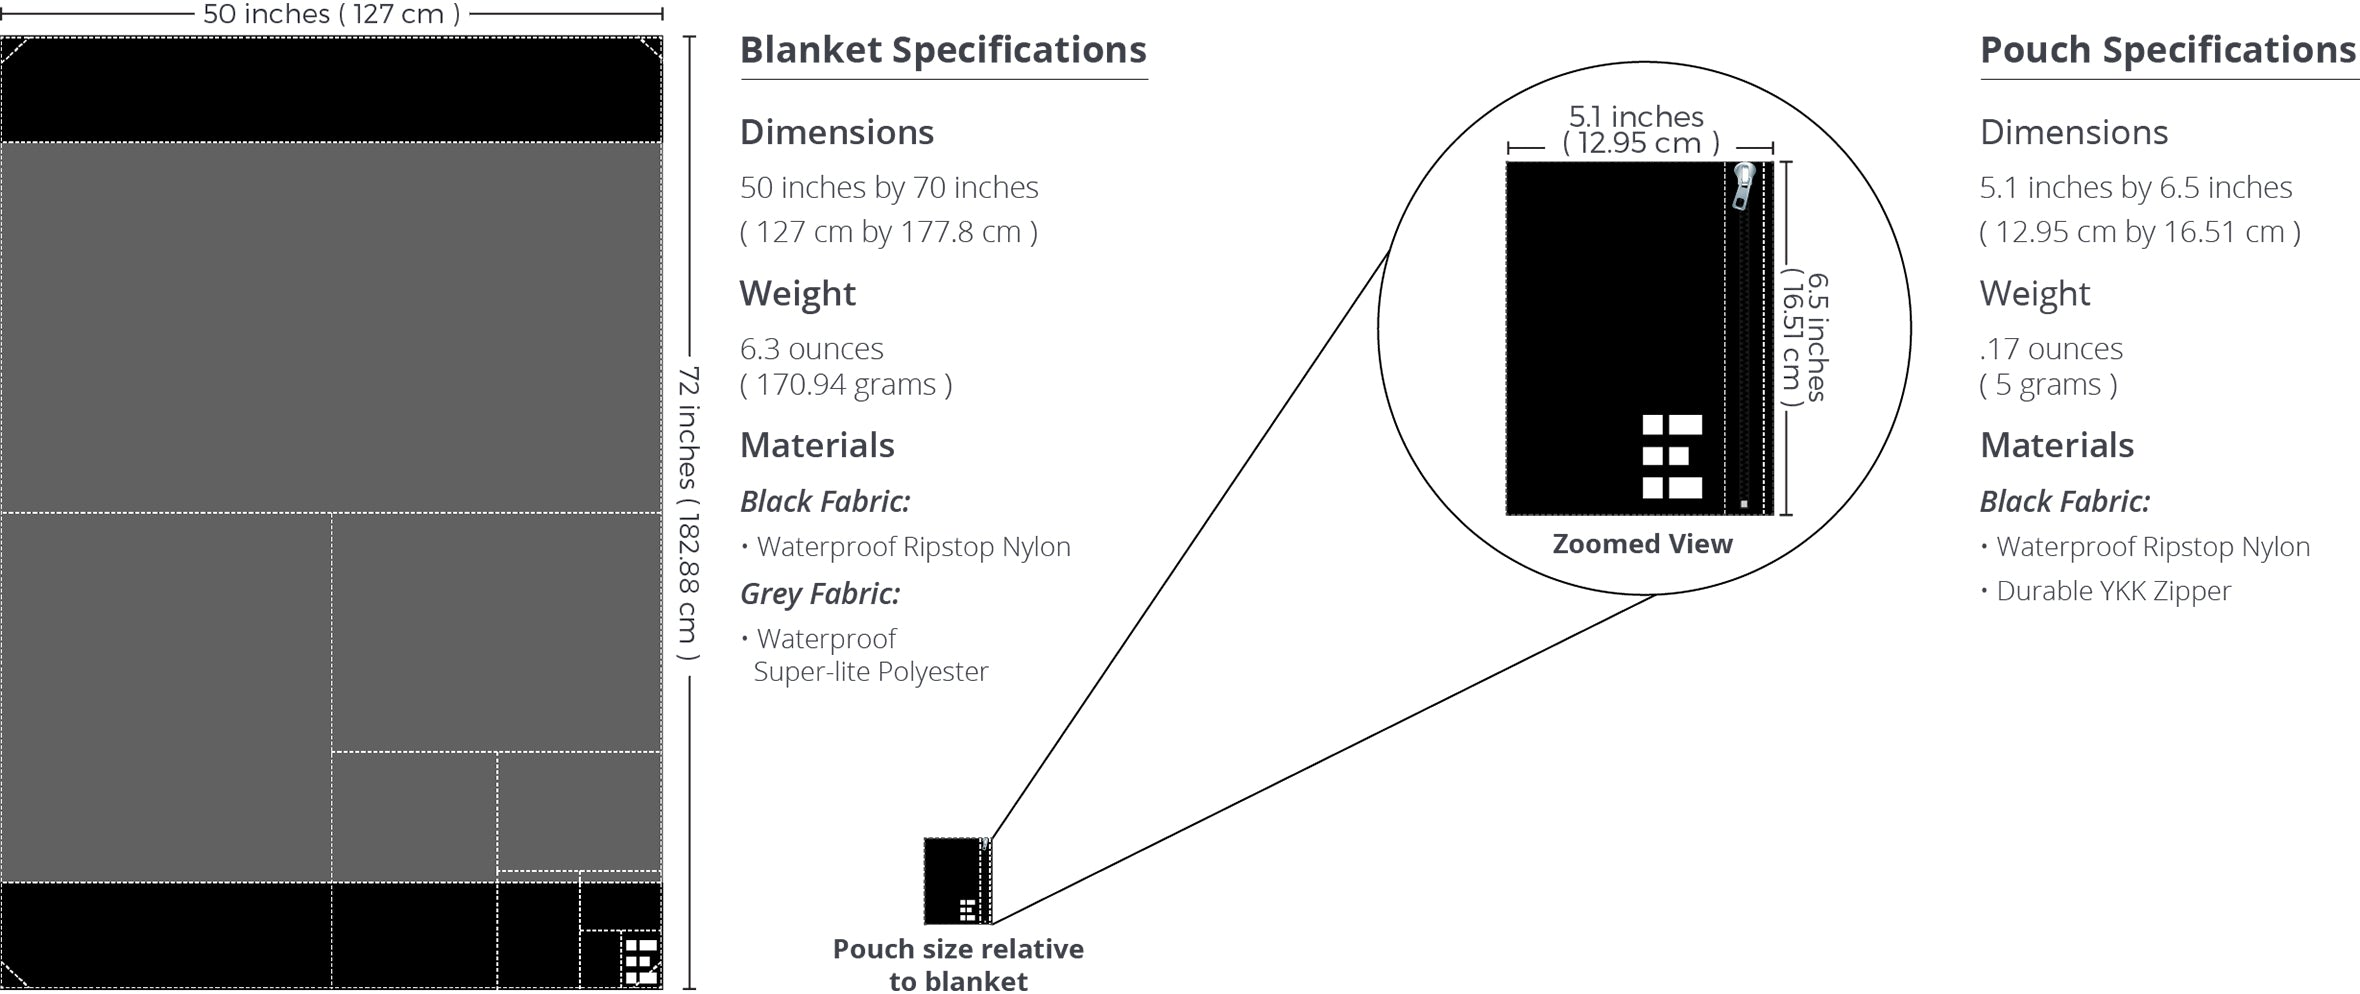 Pocket Blanket Specifications